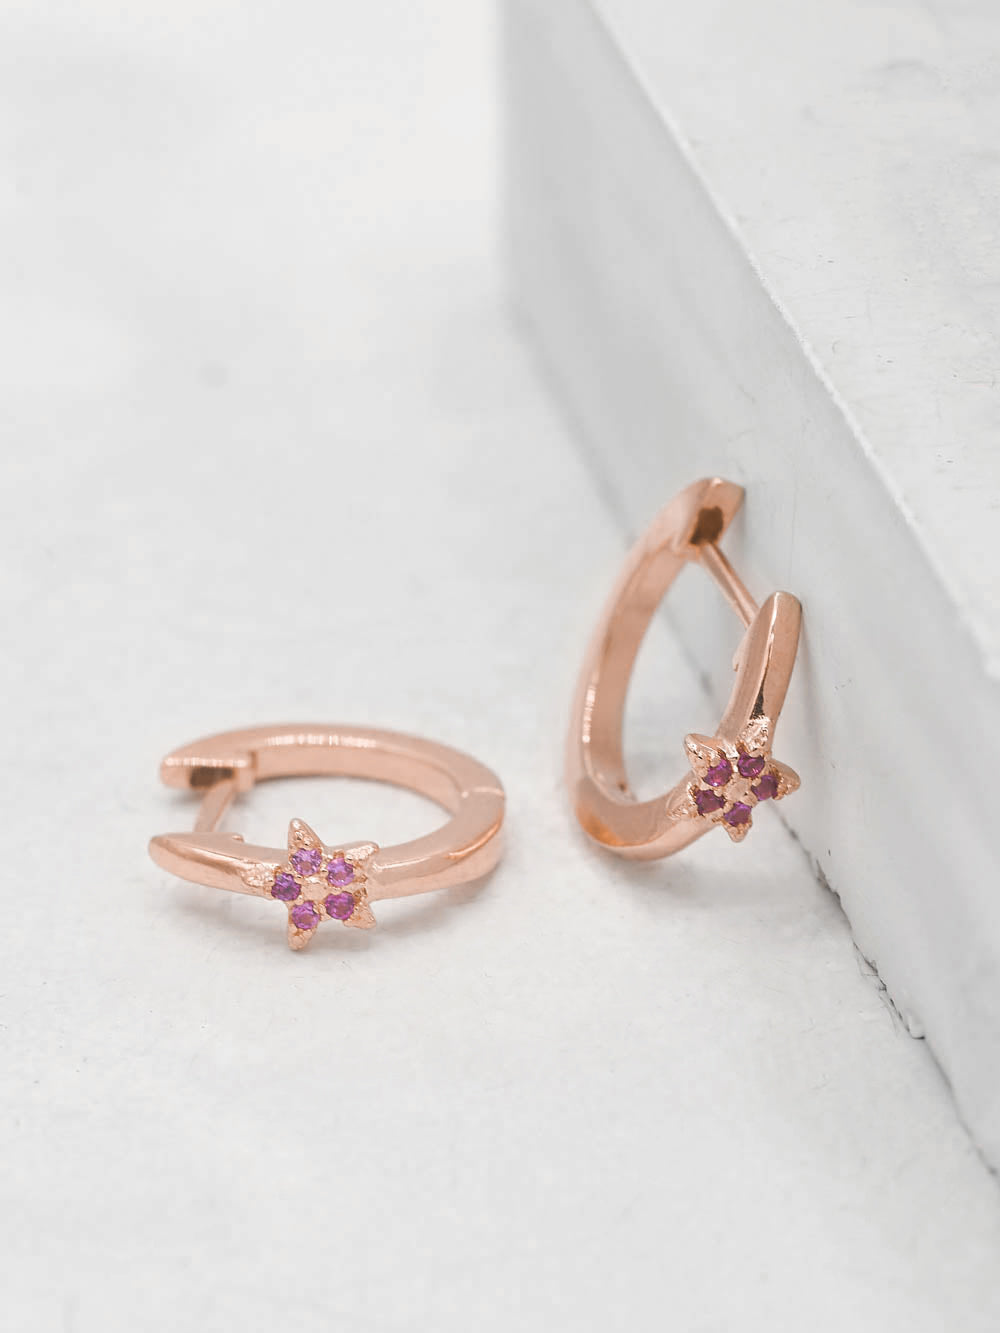 Rose Gold Plated Brass Mini Star with Pink CZ Cubic Zirconia Hoop Huggies Dainty Earring by The Faint Hearted Jewelry